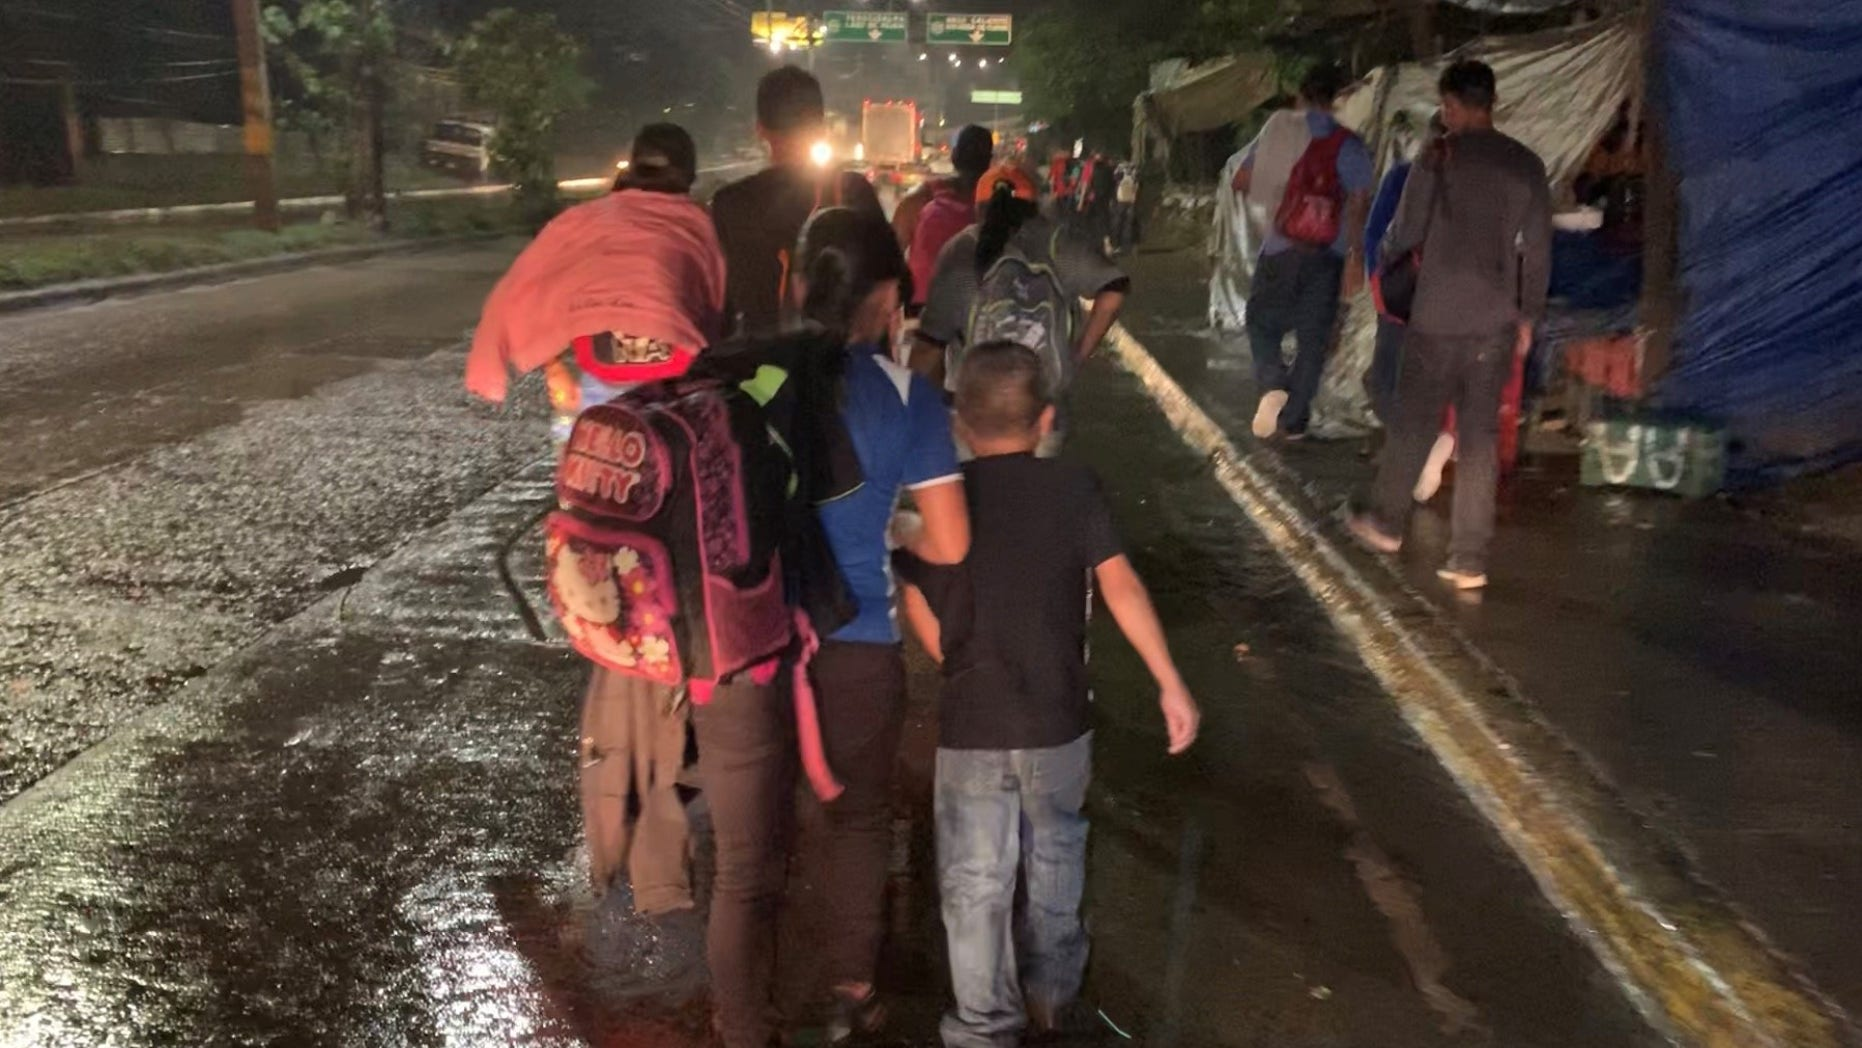 New Migrant Caravan Sets Out From Honduras to U.S.